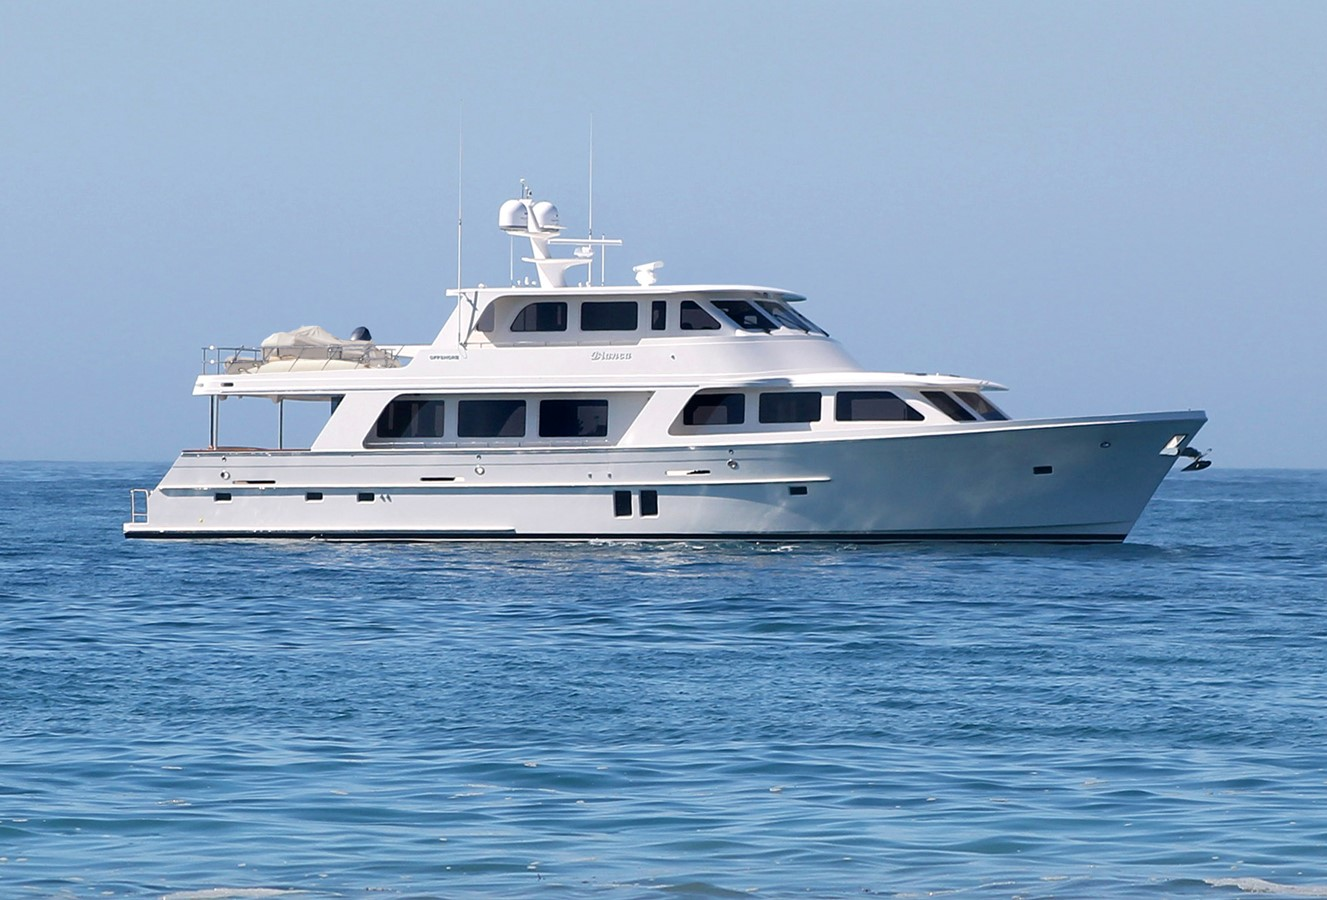 2019 OFFSHORE 87/92 Motoryacht For Sale